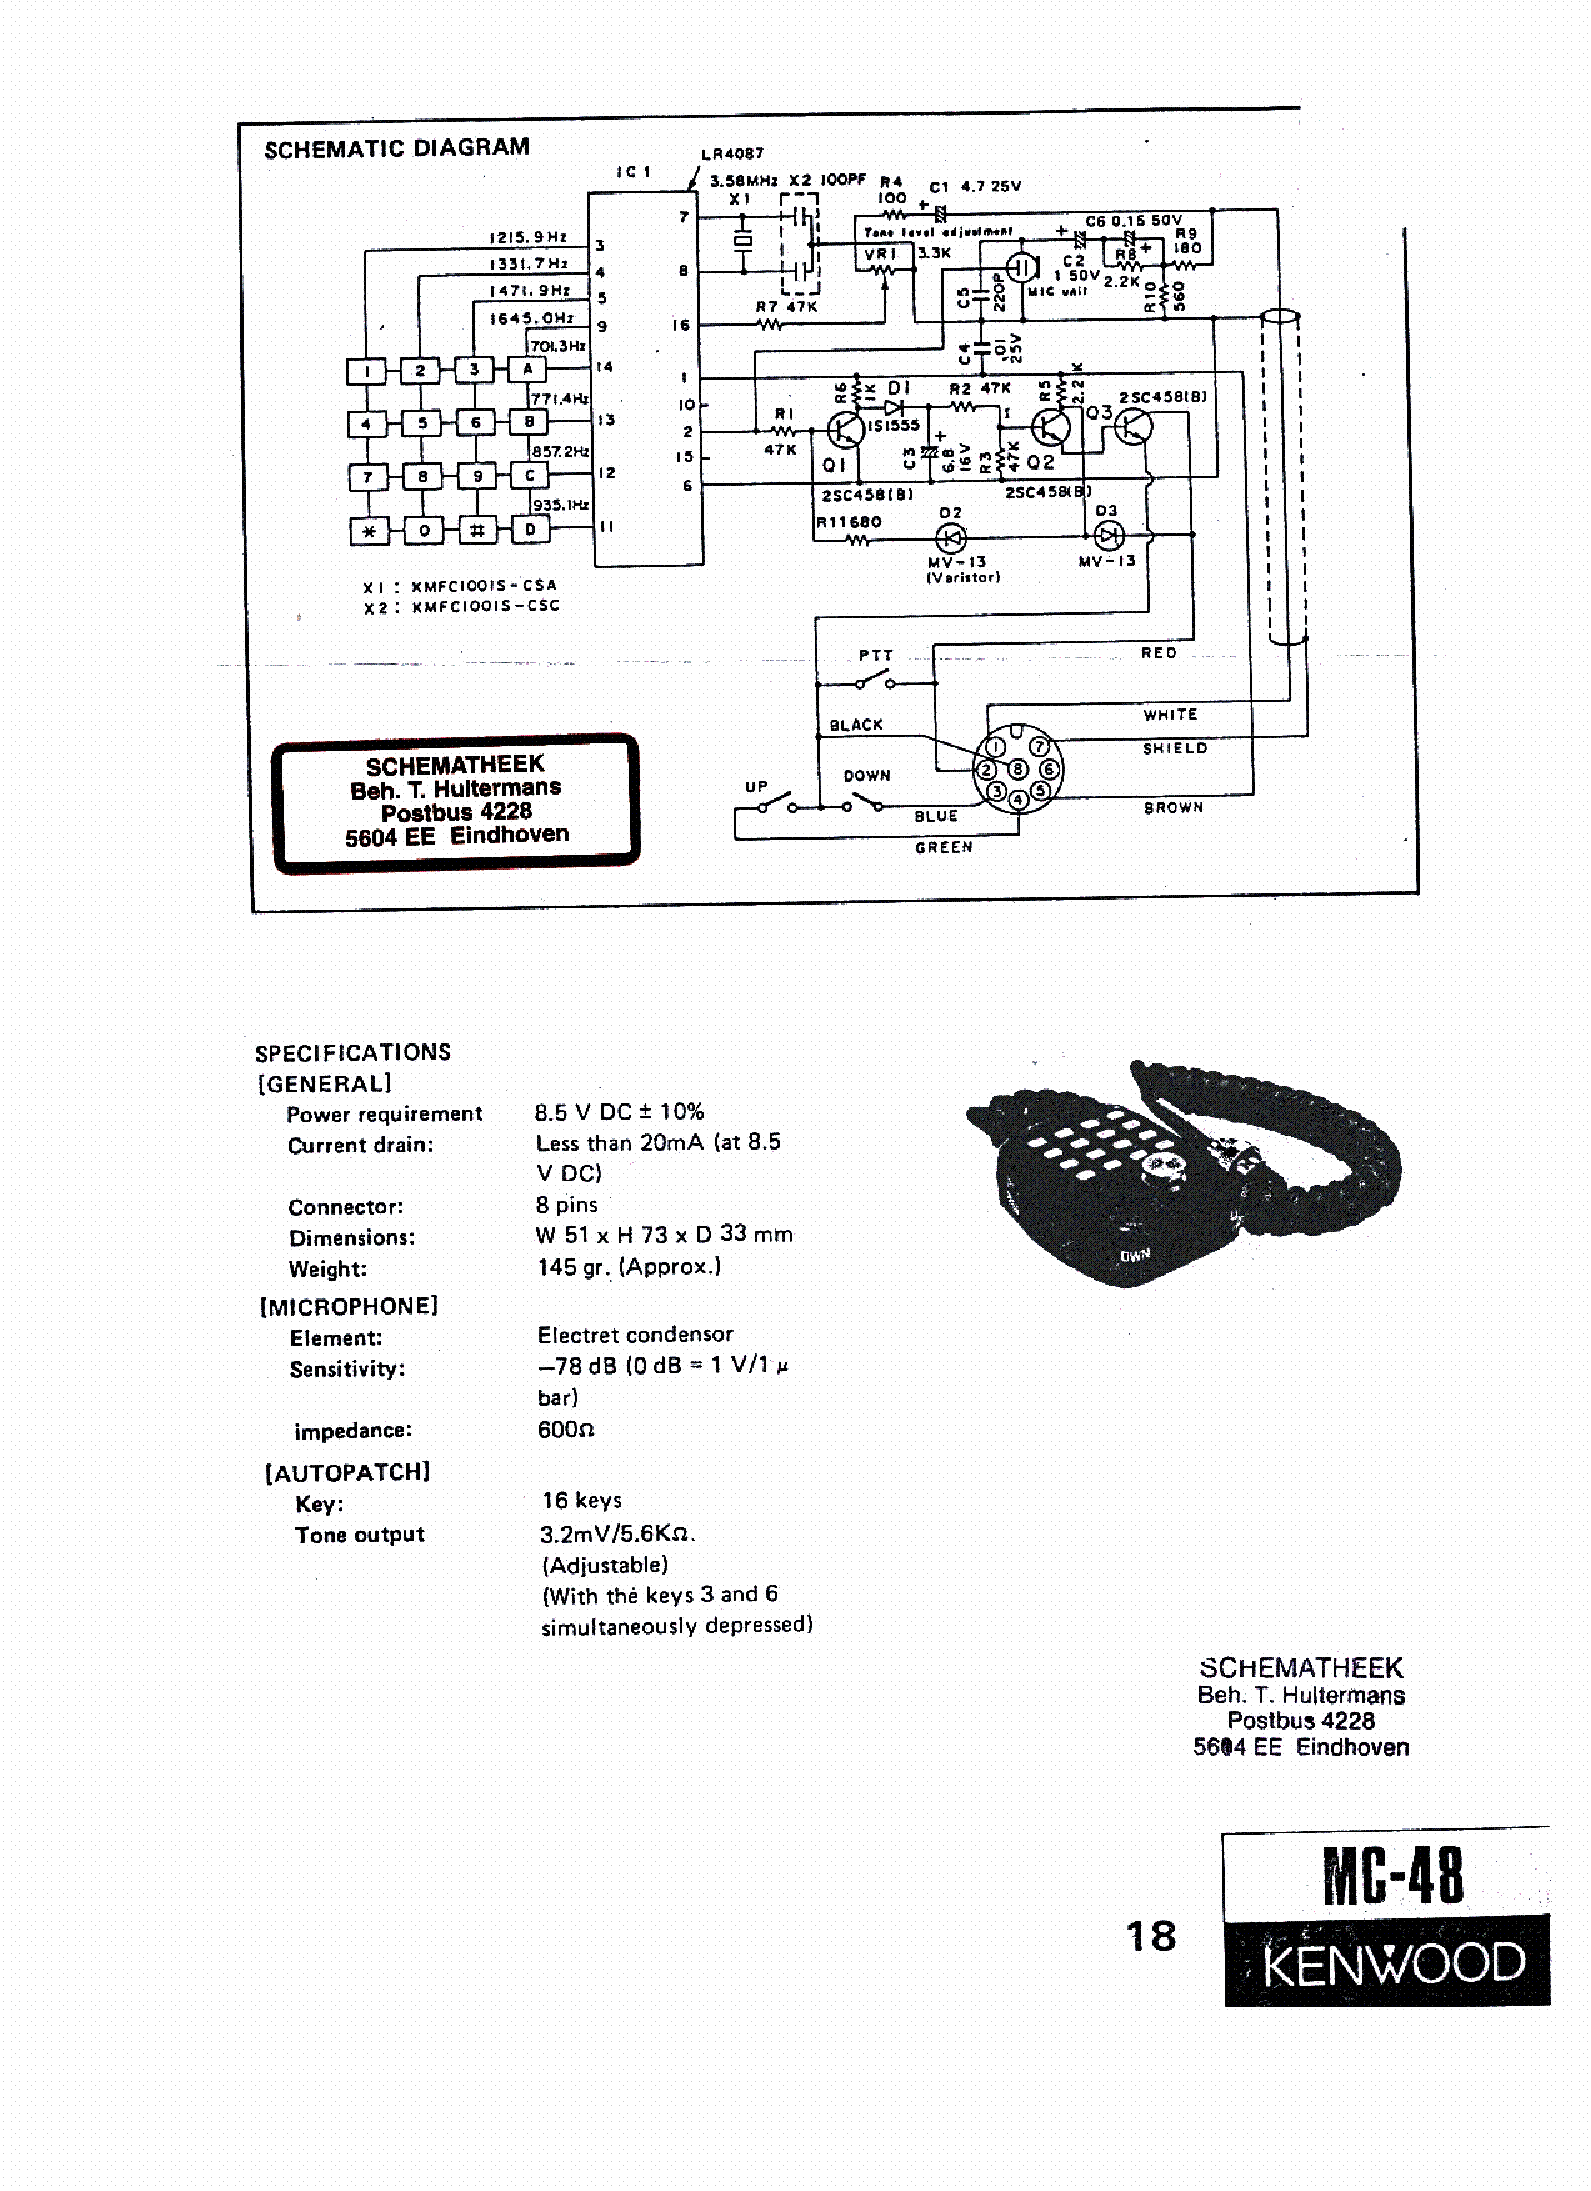 Wiring Diagram Kenwood Mc 59 Microphone 39 Images Kmc 35 Mic Eeprom 48 Schpdf 1 Sch Service Manual Download Schematics